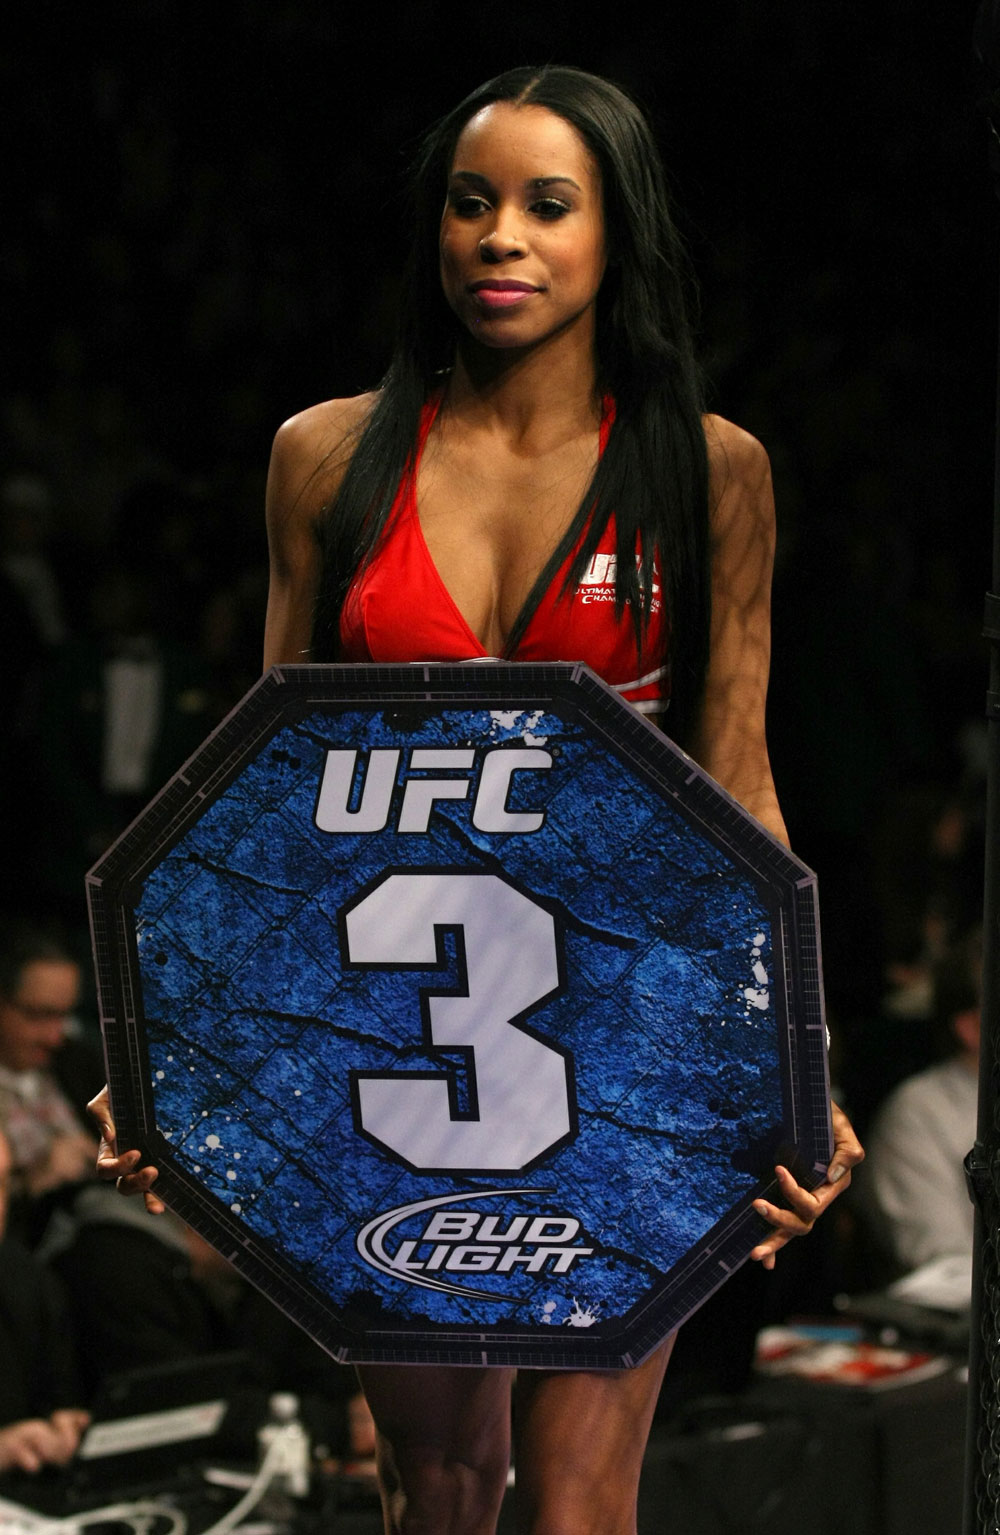 UFC 125: Octagon girl, Chandella during the Grispi vs. Poirier